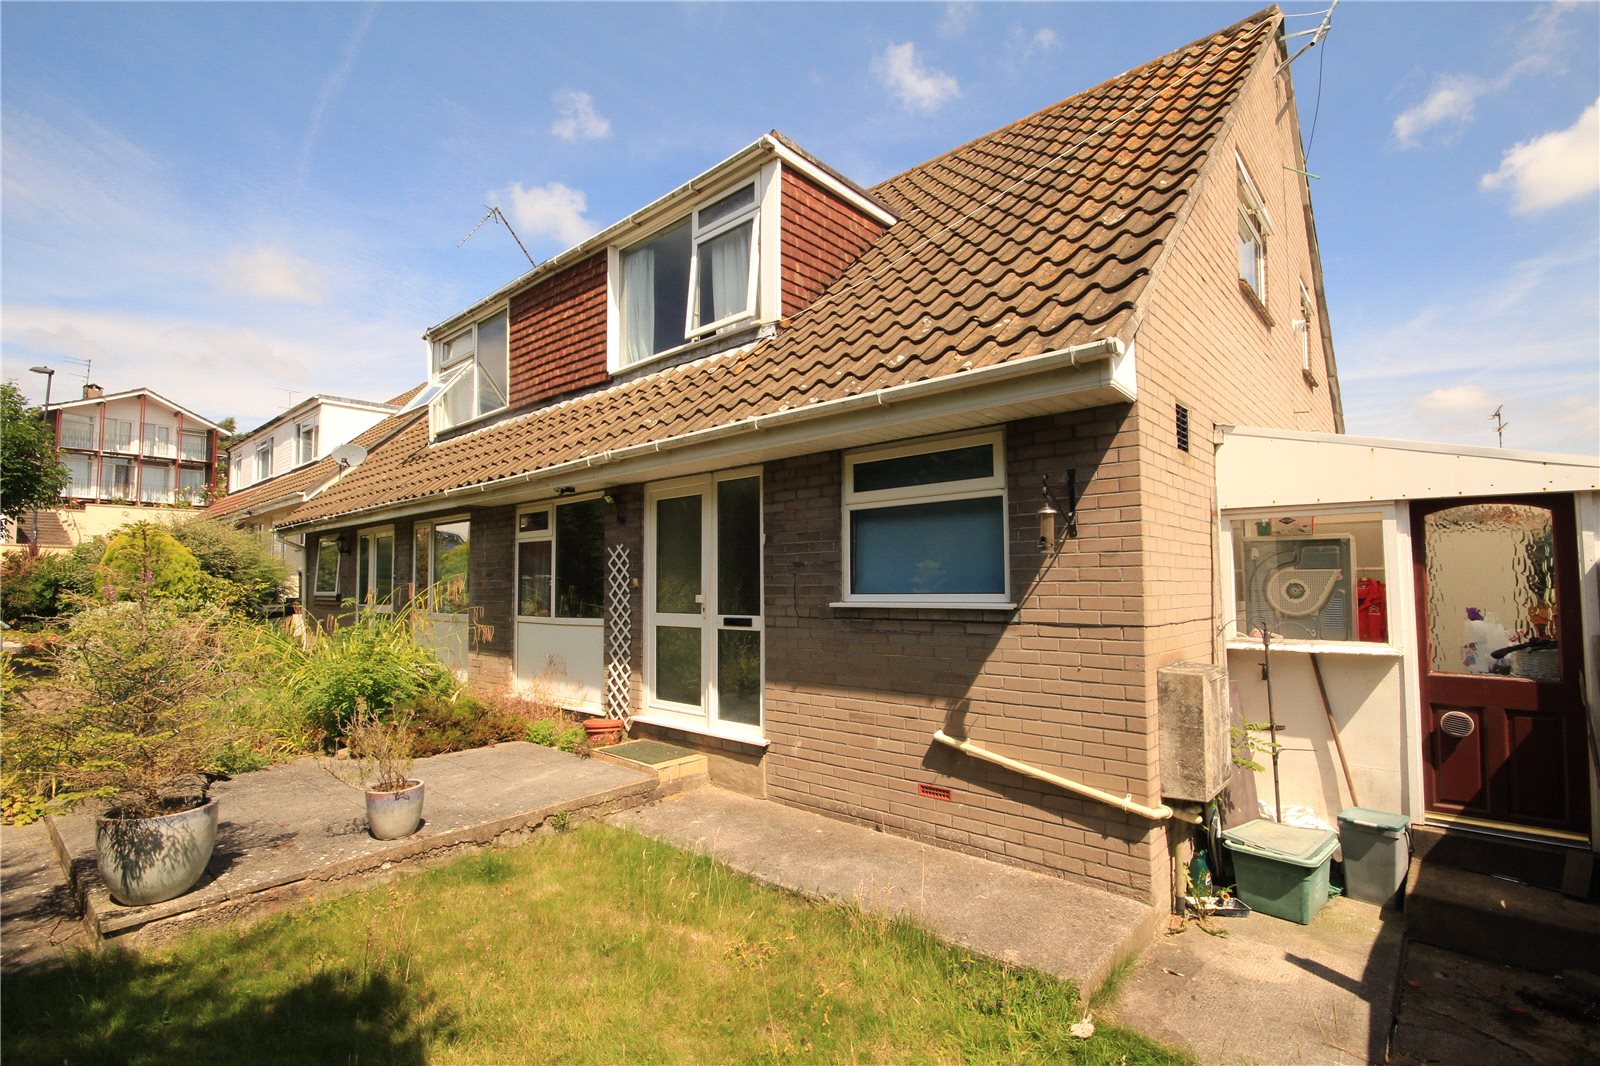 3 Bedrooms Semi Detached House for sale in Stanbridge Close Downend Bristol BS16